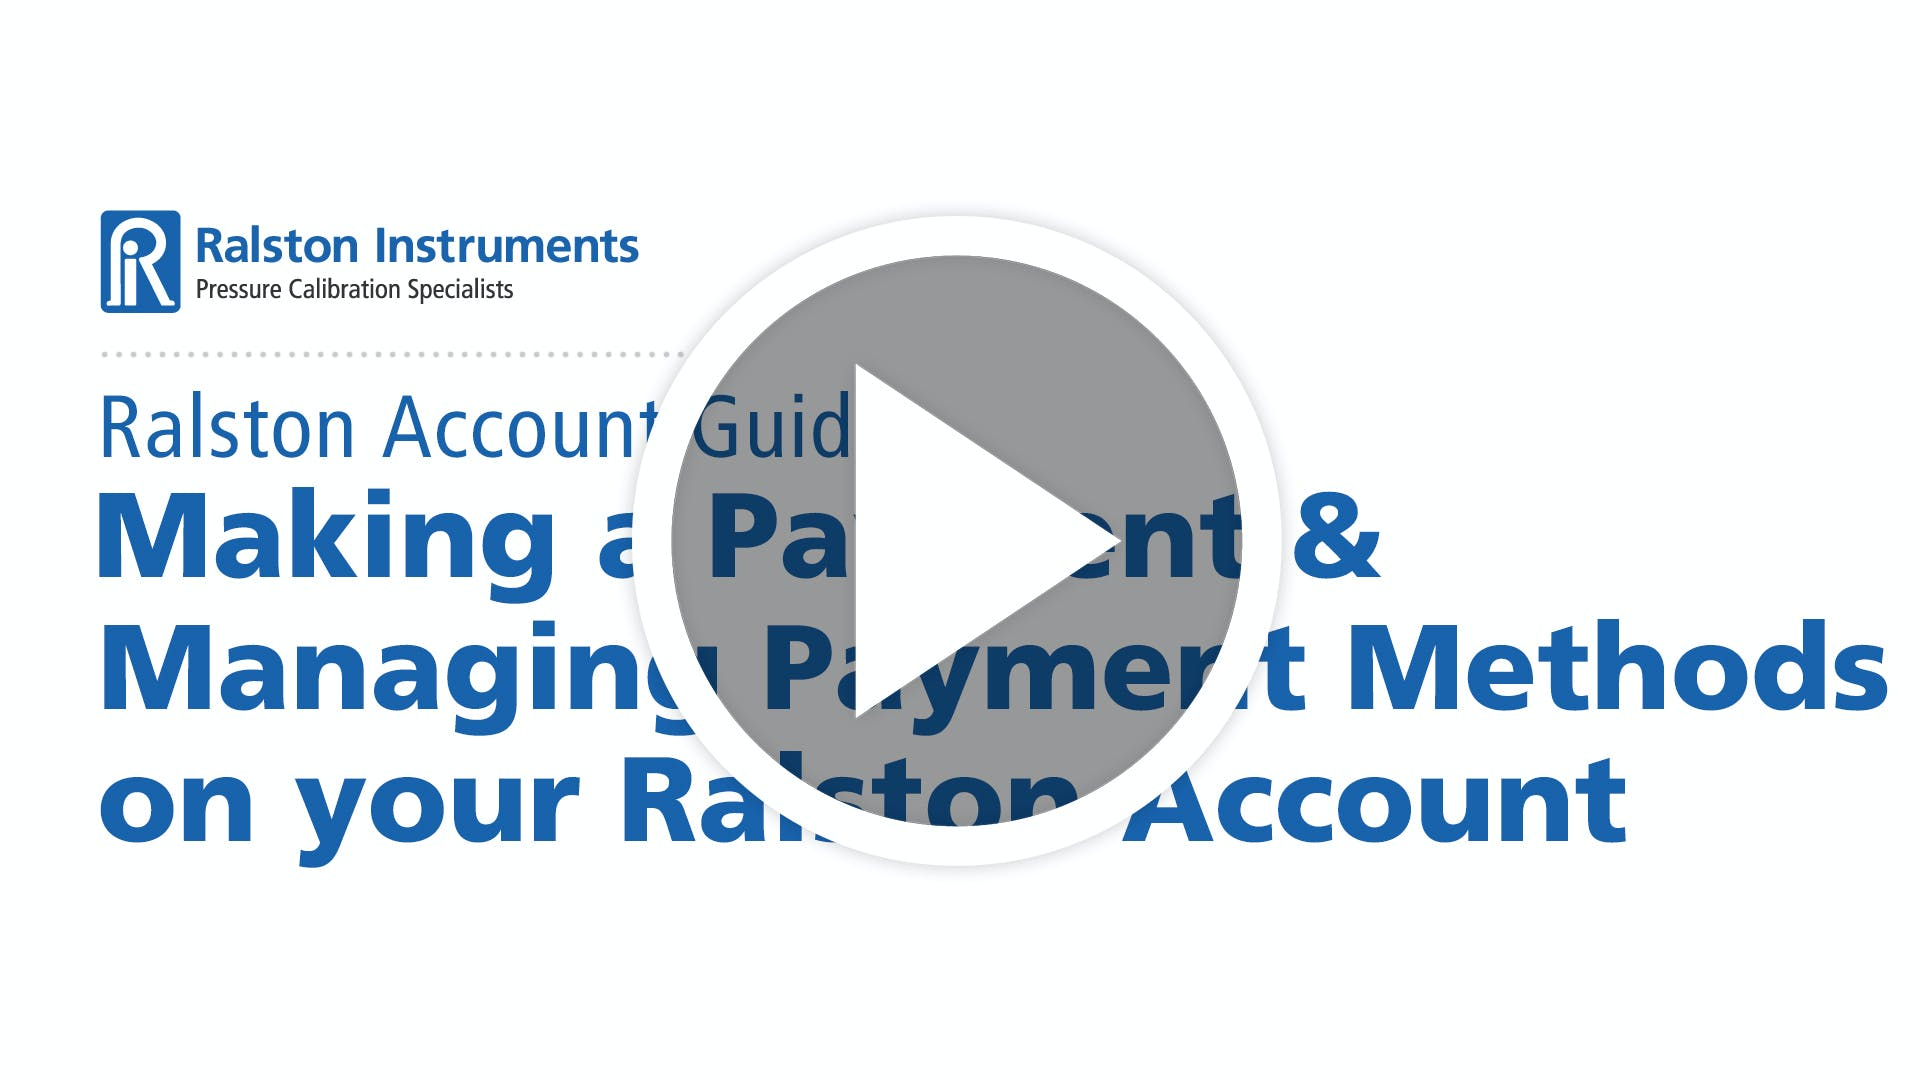 Making a Payment & Managing Payment Methods